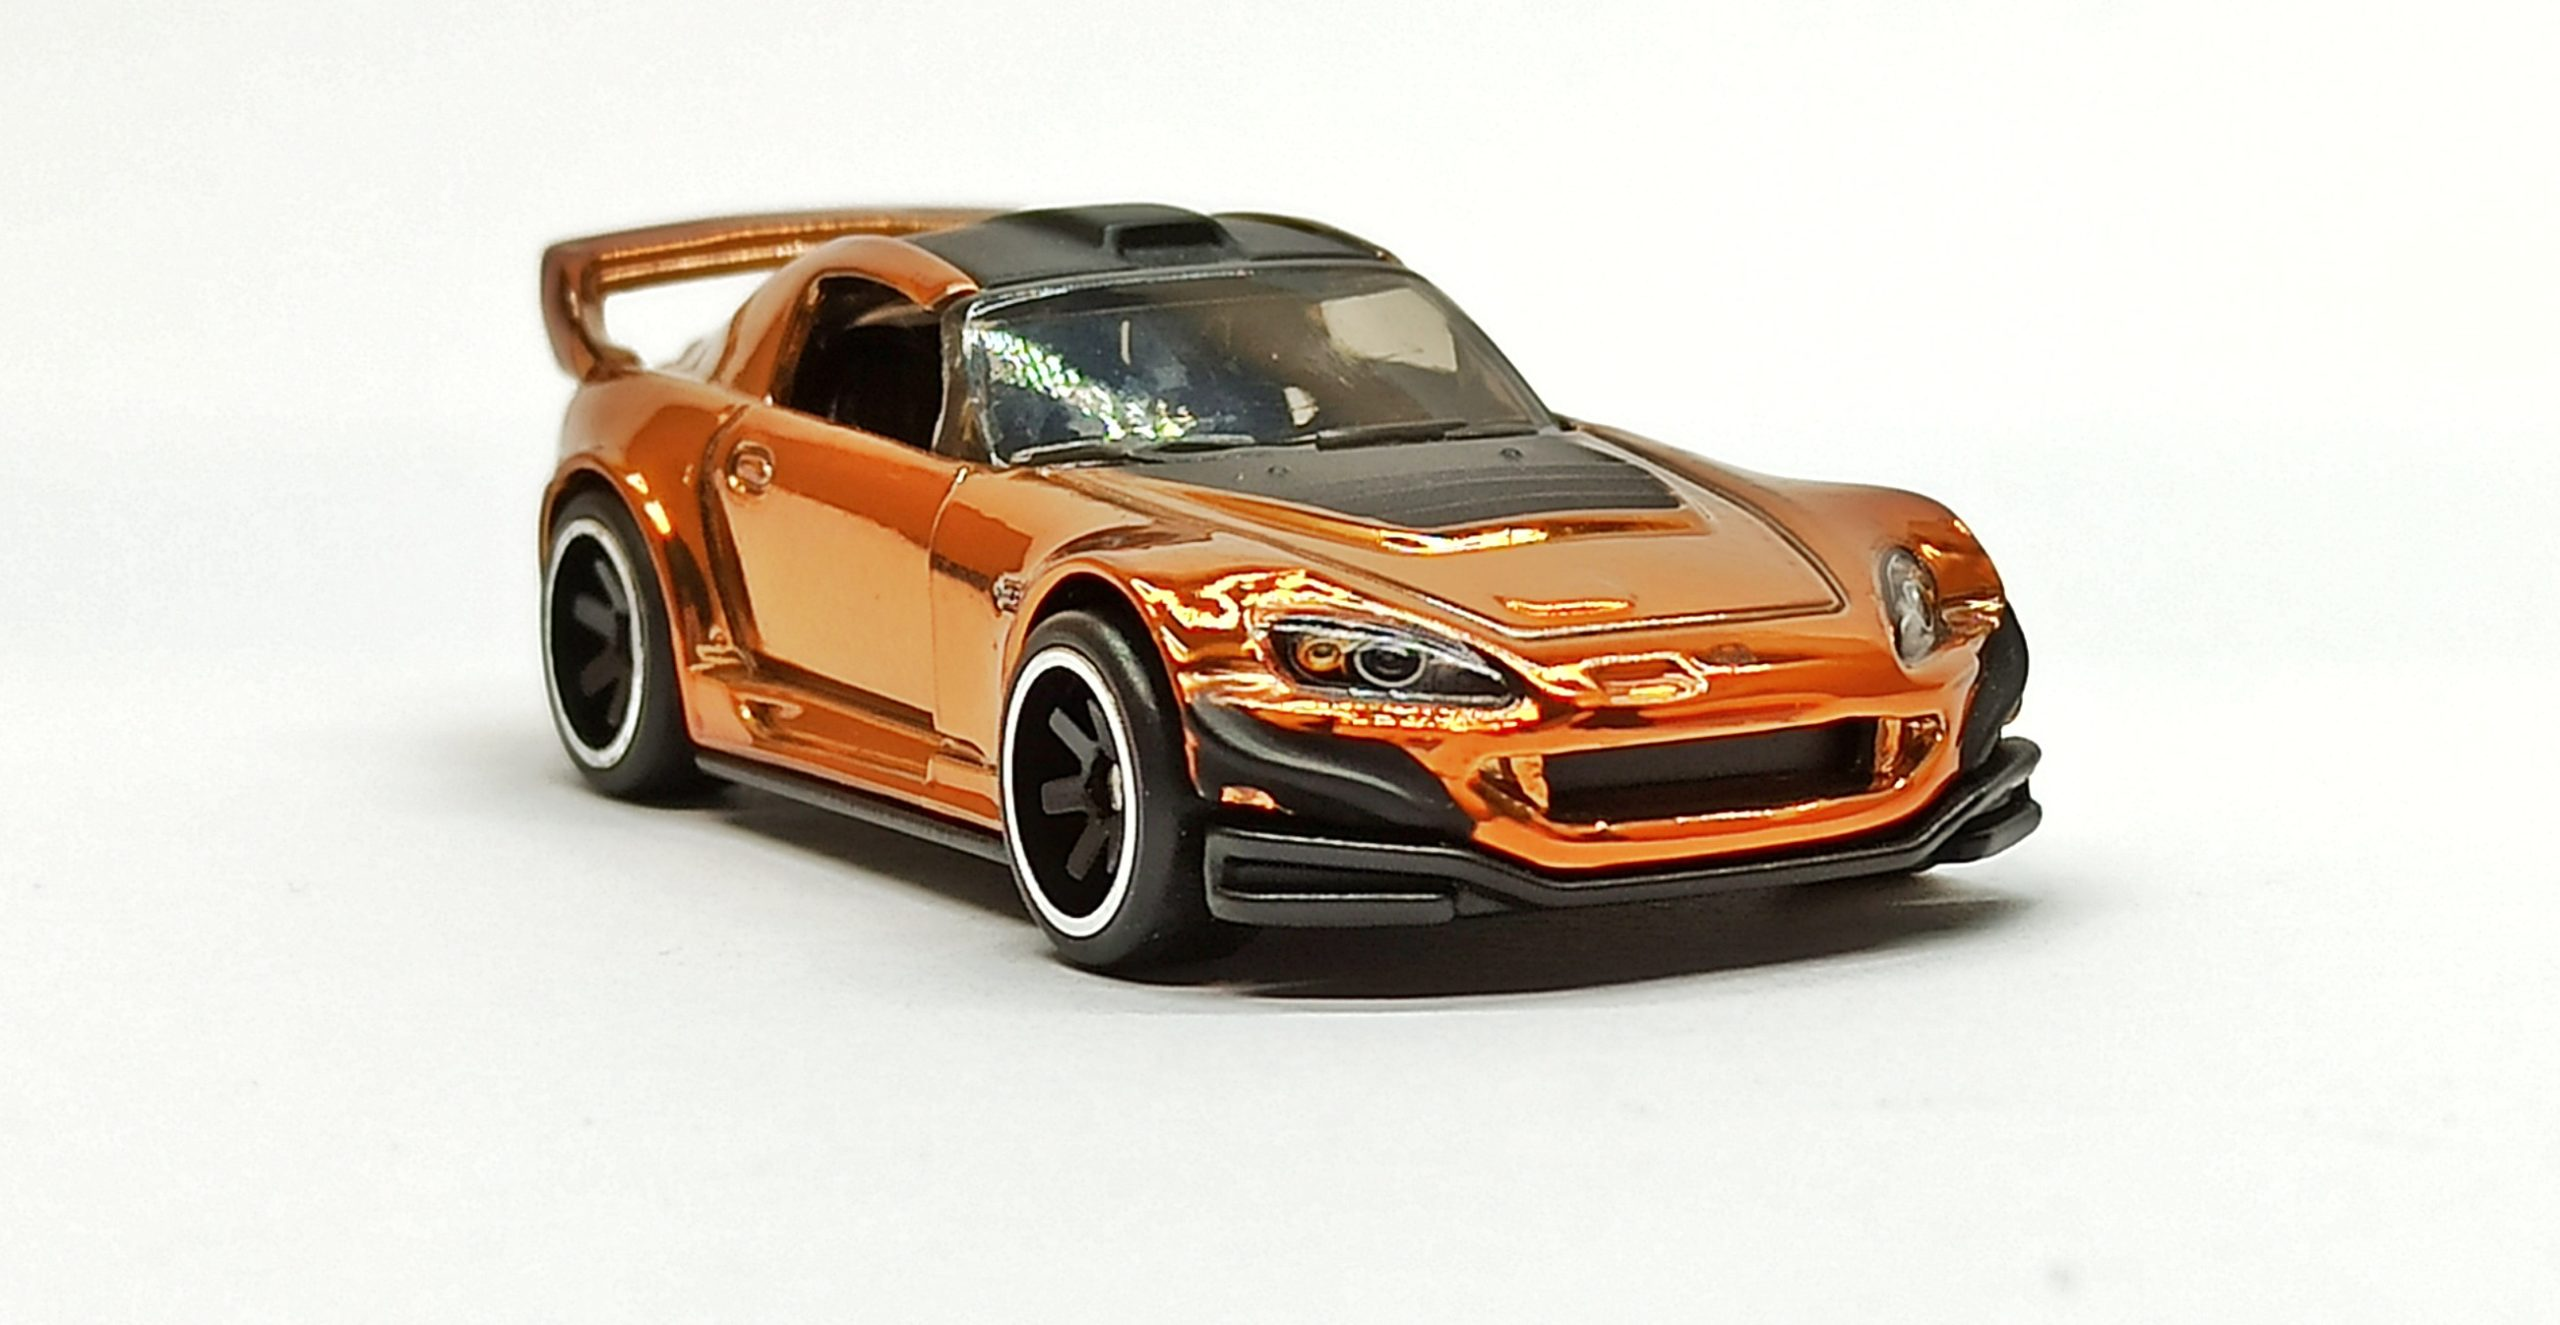 Hot Wheels Honda S2000 2019 RLC Exclusive (1 of 10.000) spectraflame orange front angle